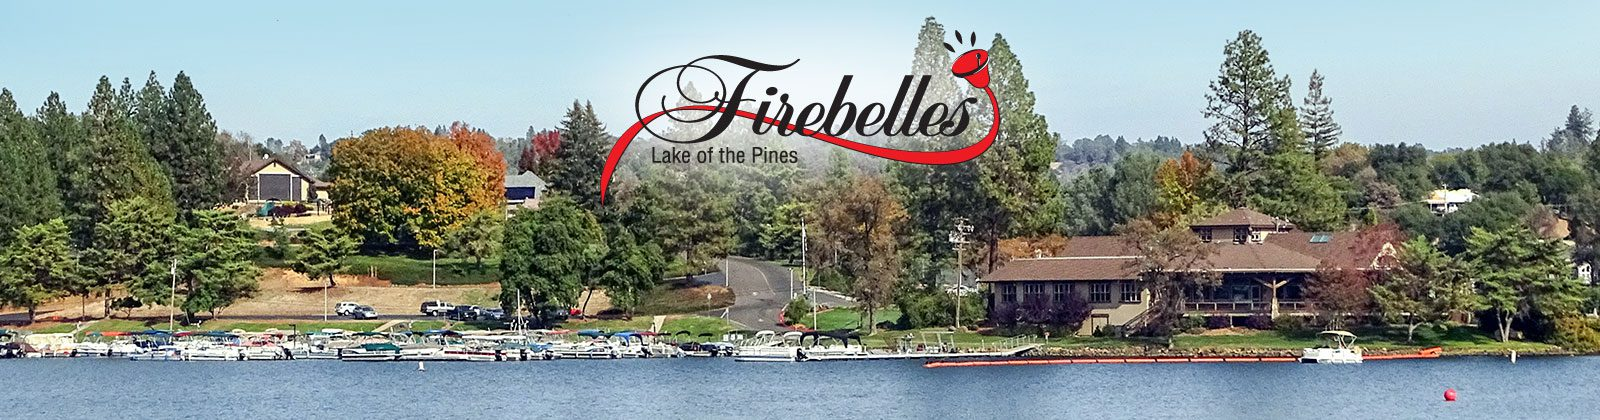 Lake of the Pines Firebelles